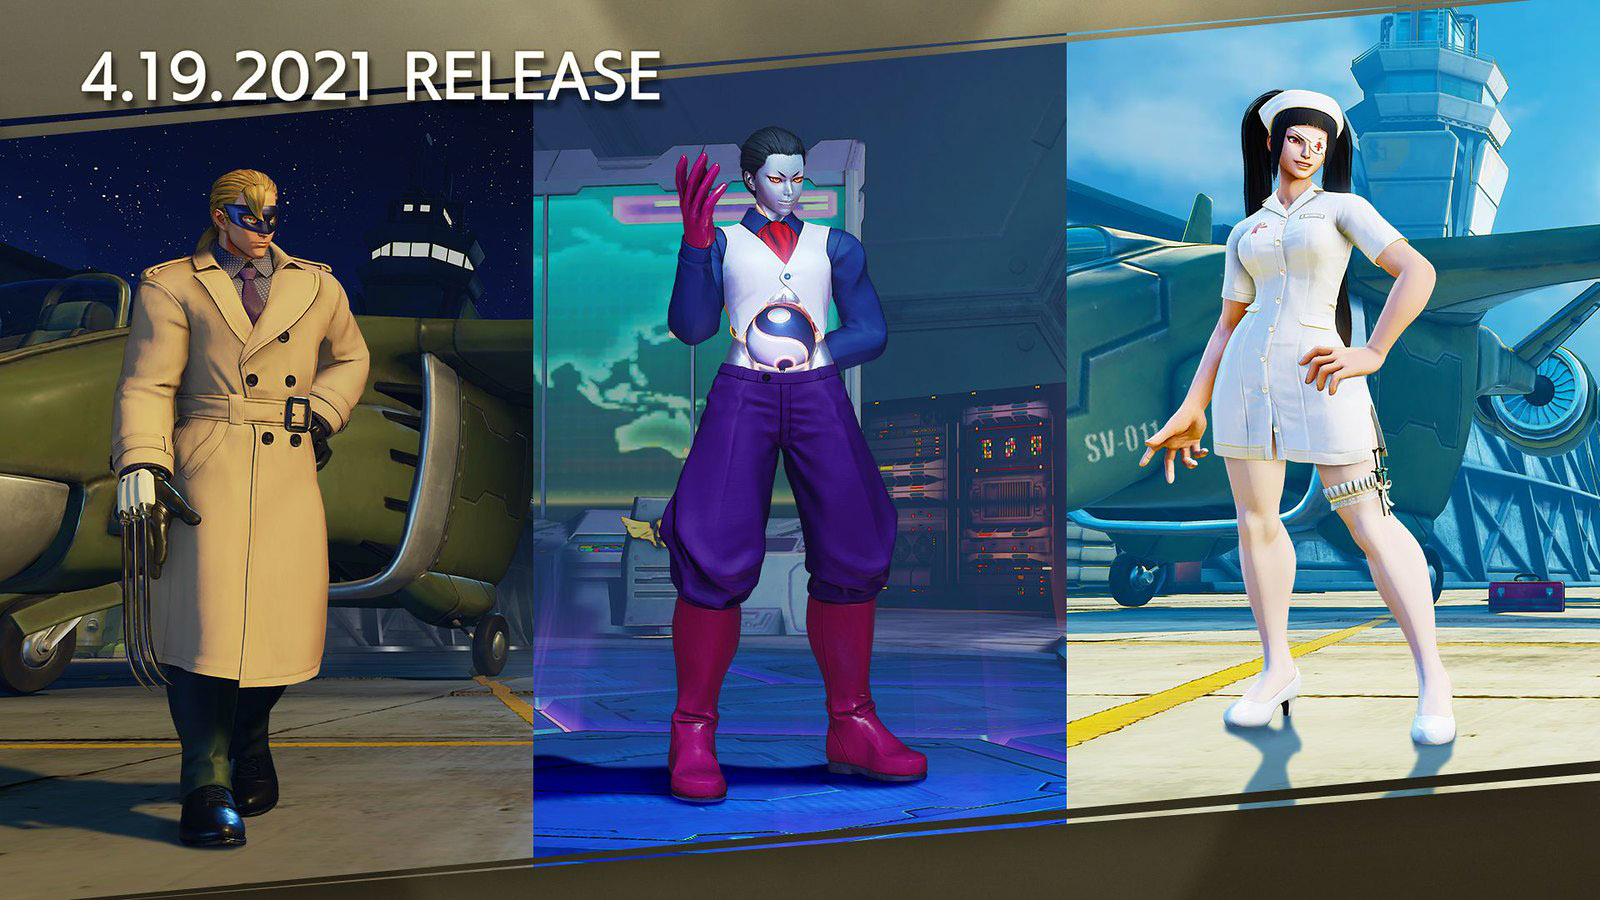 SF5 Pro Costumes  6 out of 6 image gallery